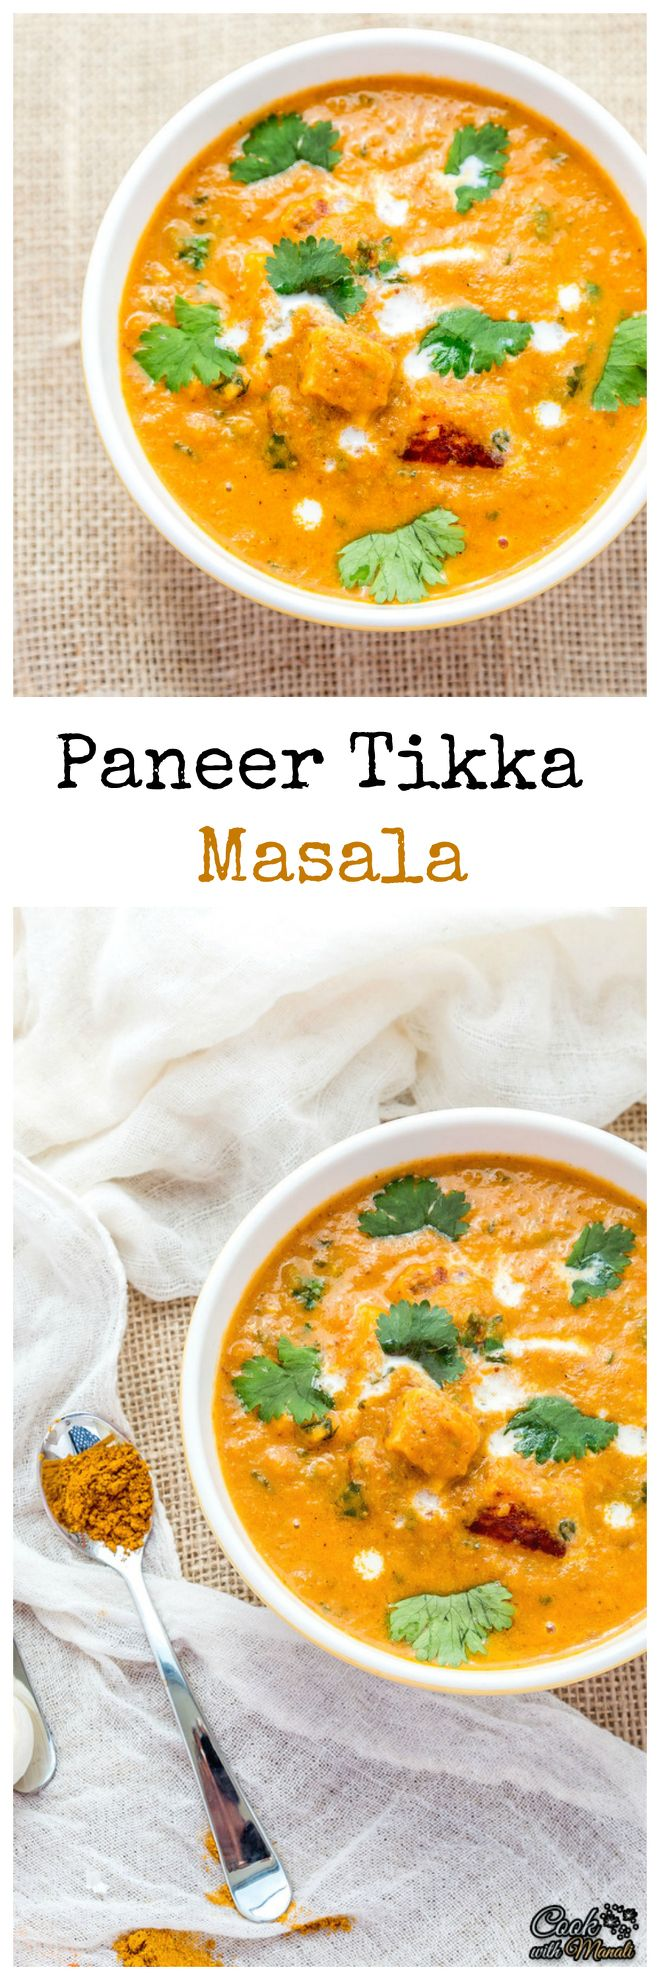 The popular Indian Paneer Tikka (spiced Indian cottage cheese) in Onion and Tomato based Curry. Goes well with Naan or Rice!